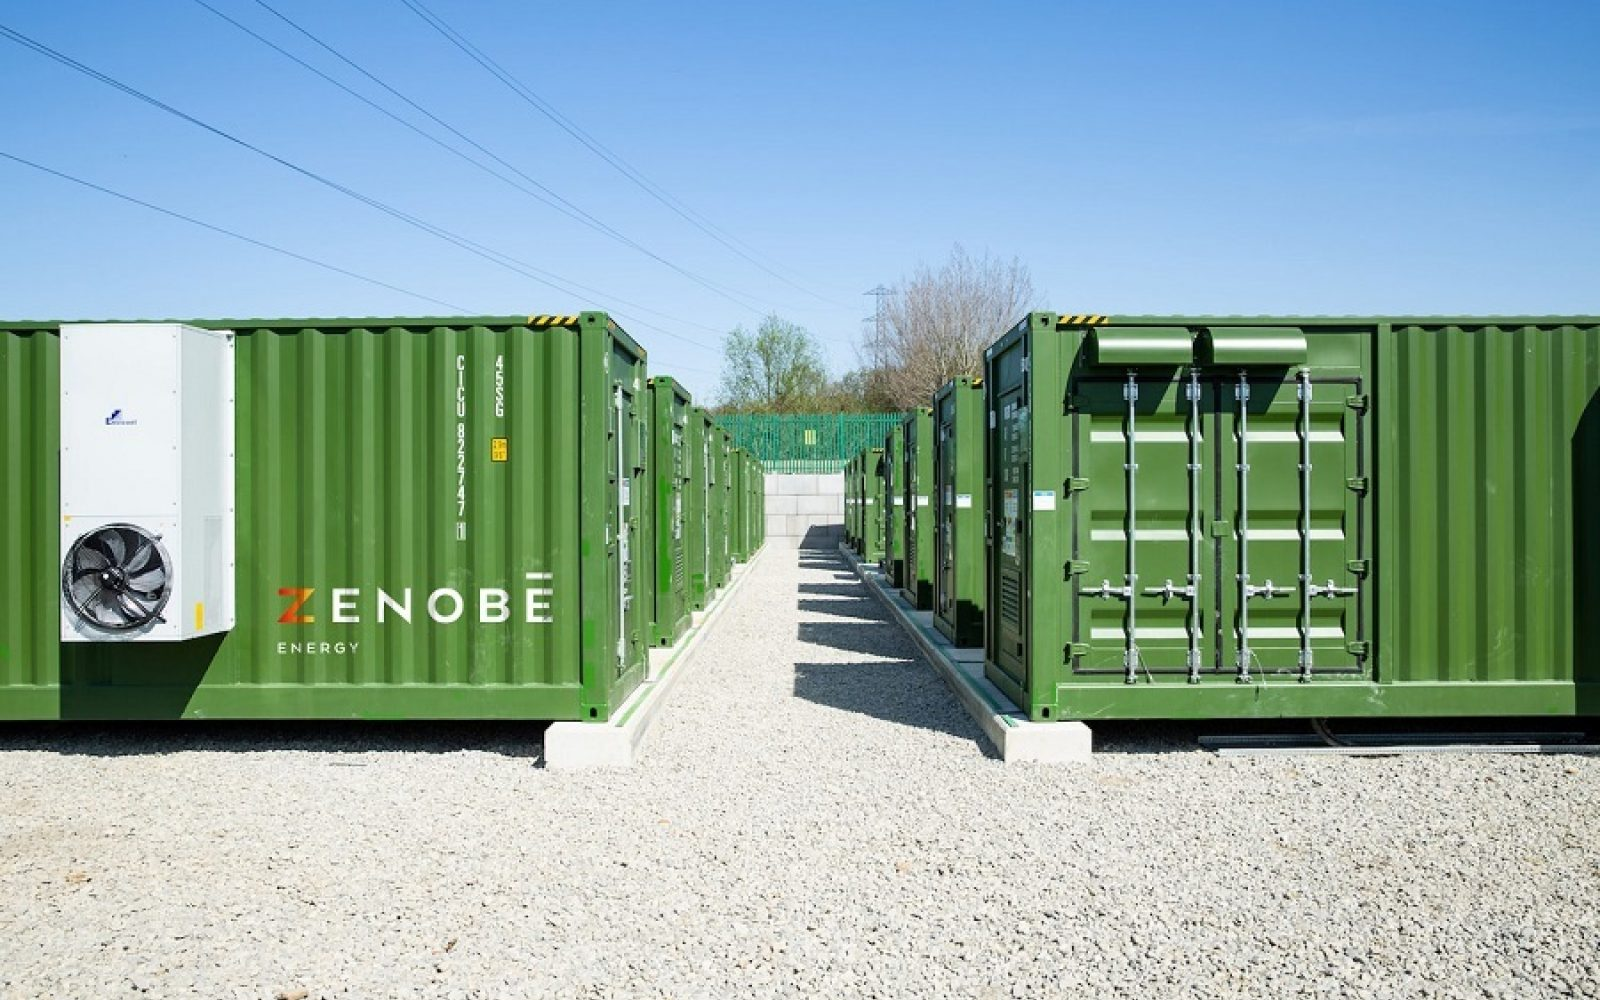 There is now more than 1GW of battery energy storage in the UK. Image: Zenobe.